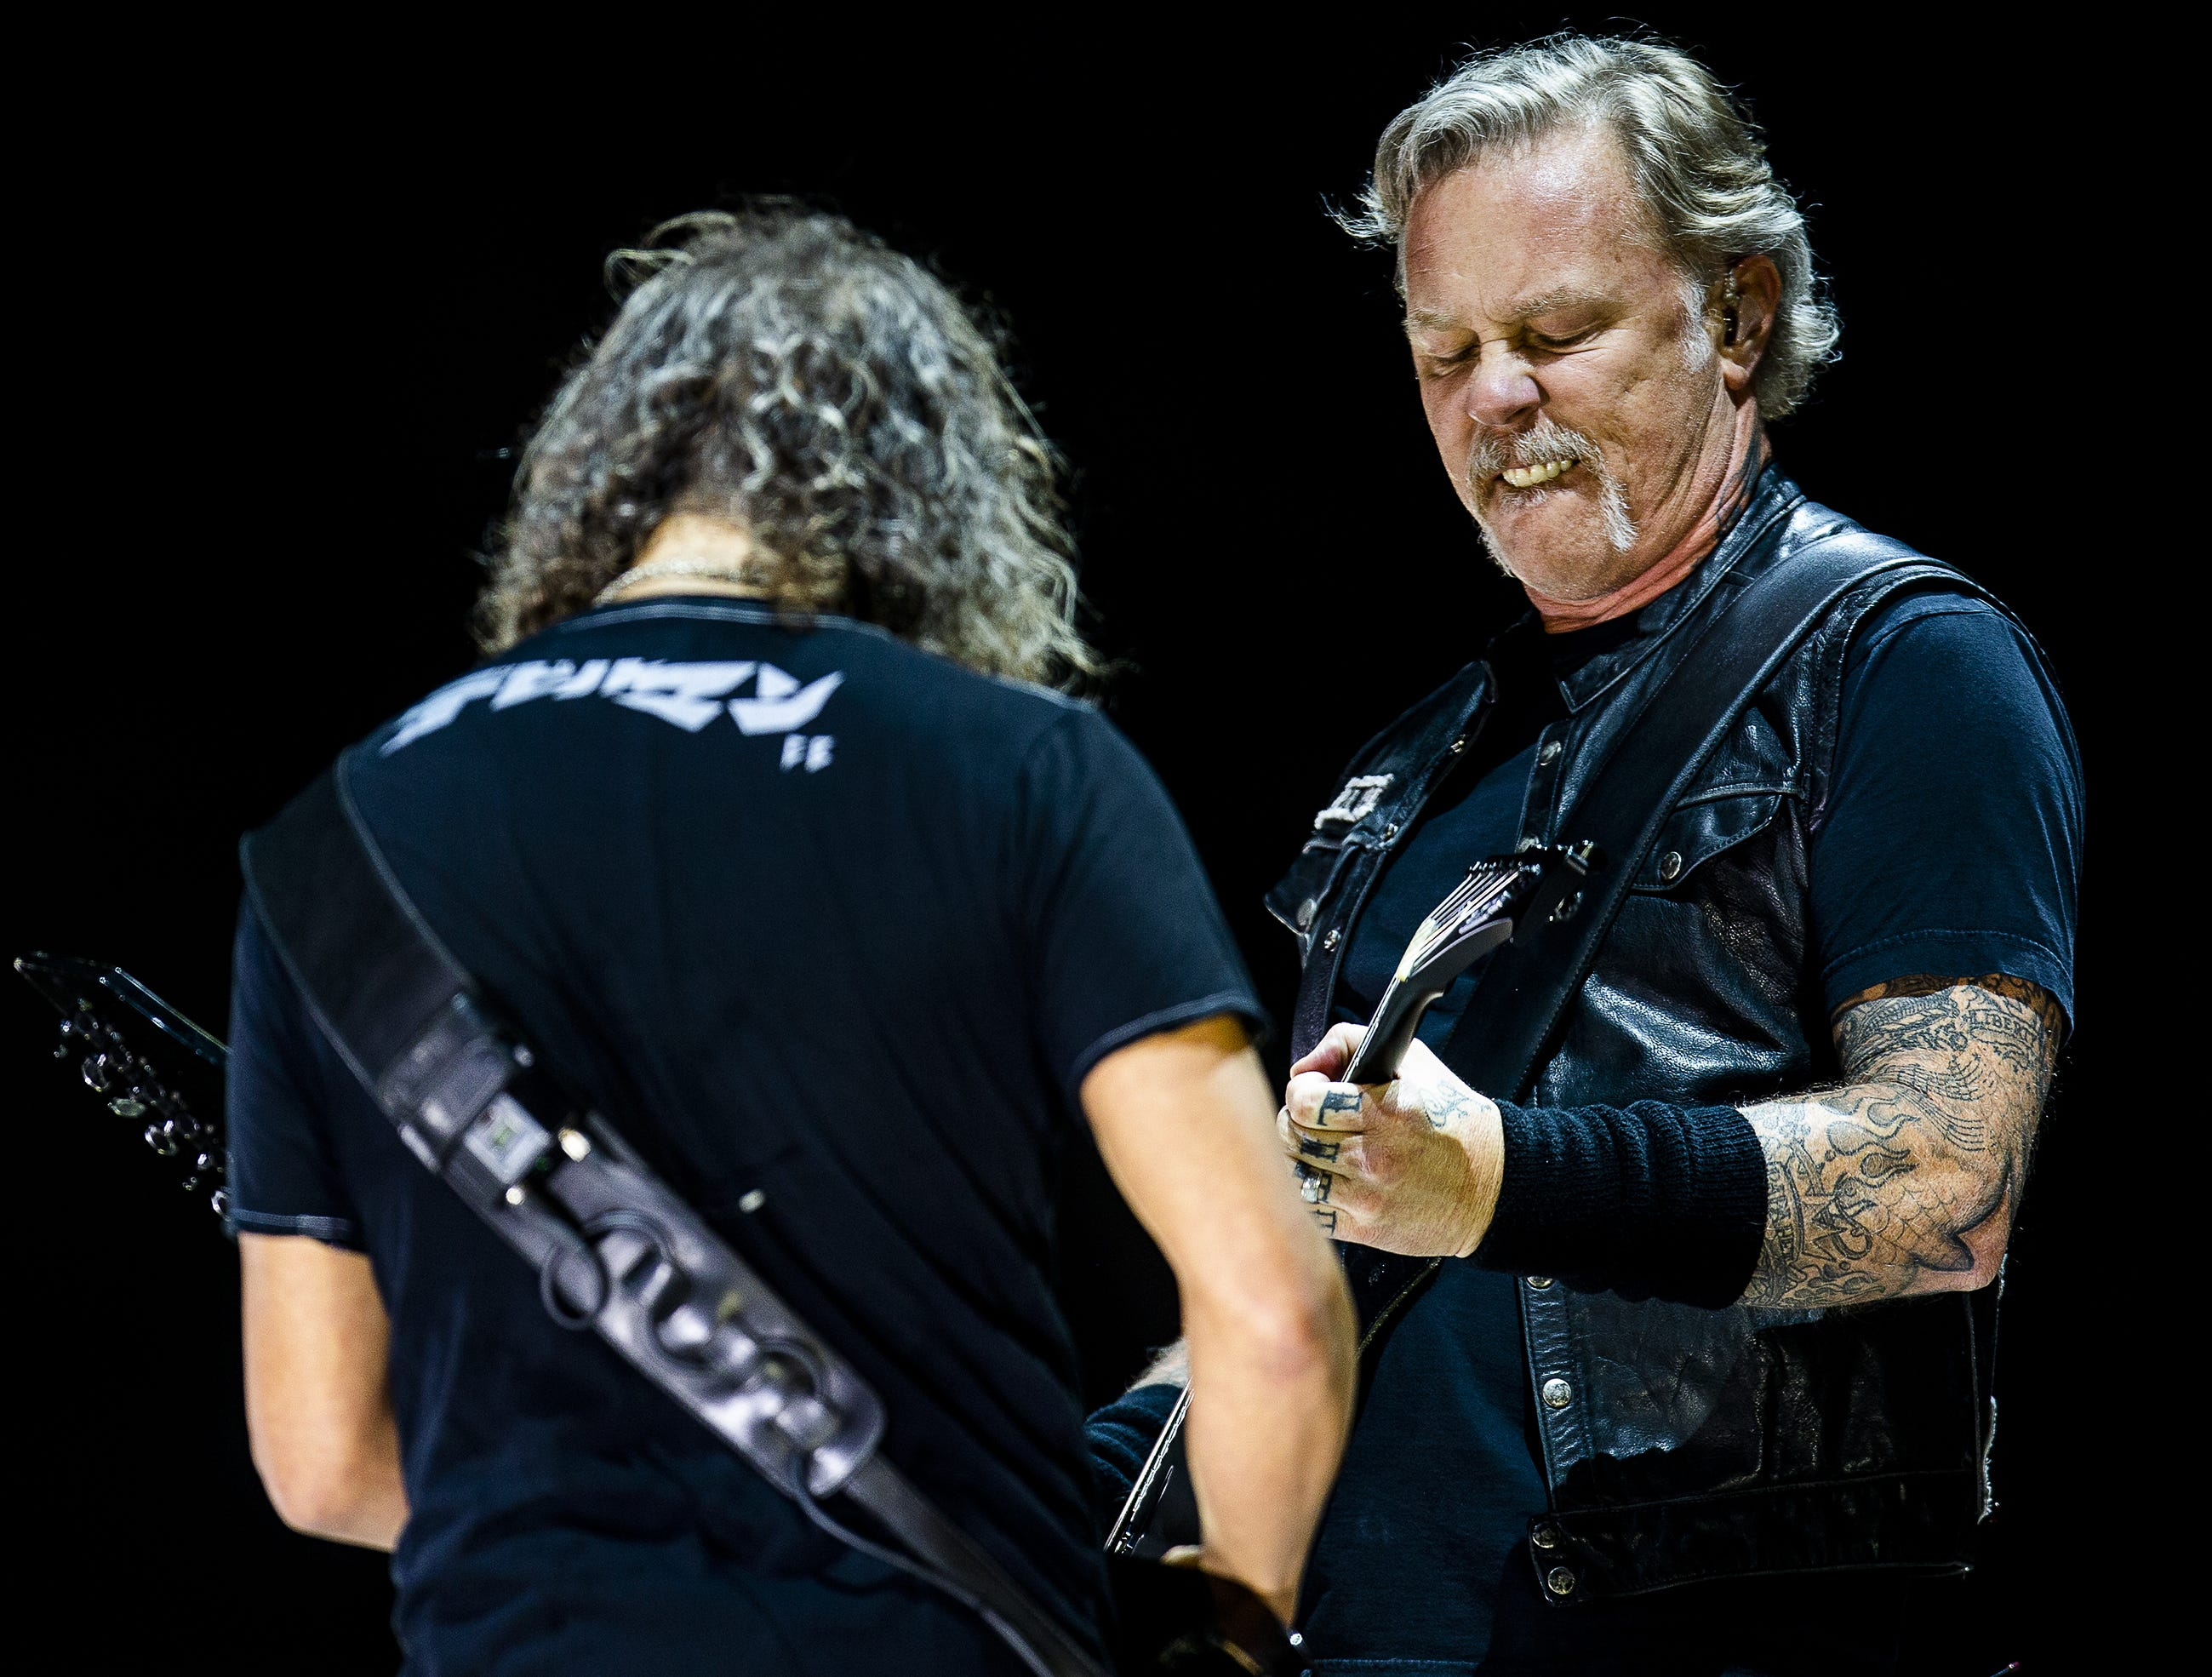 Metallica bandmates James Hetfield and Kirk Hammett stood together while performing at the KFC Yum Center in downtown Louisville, Ky. on Saturday, March 9, 2019.